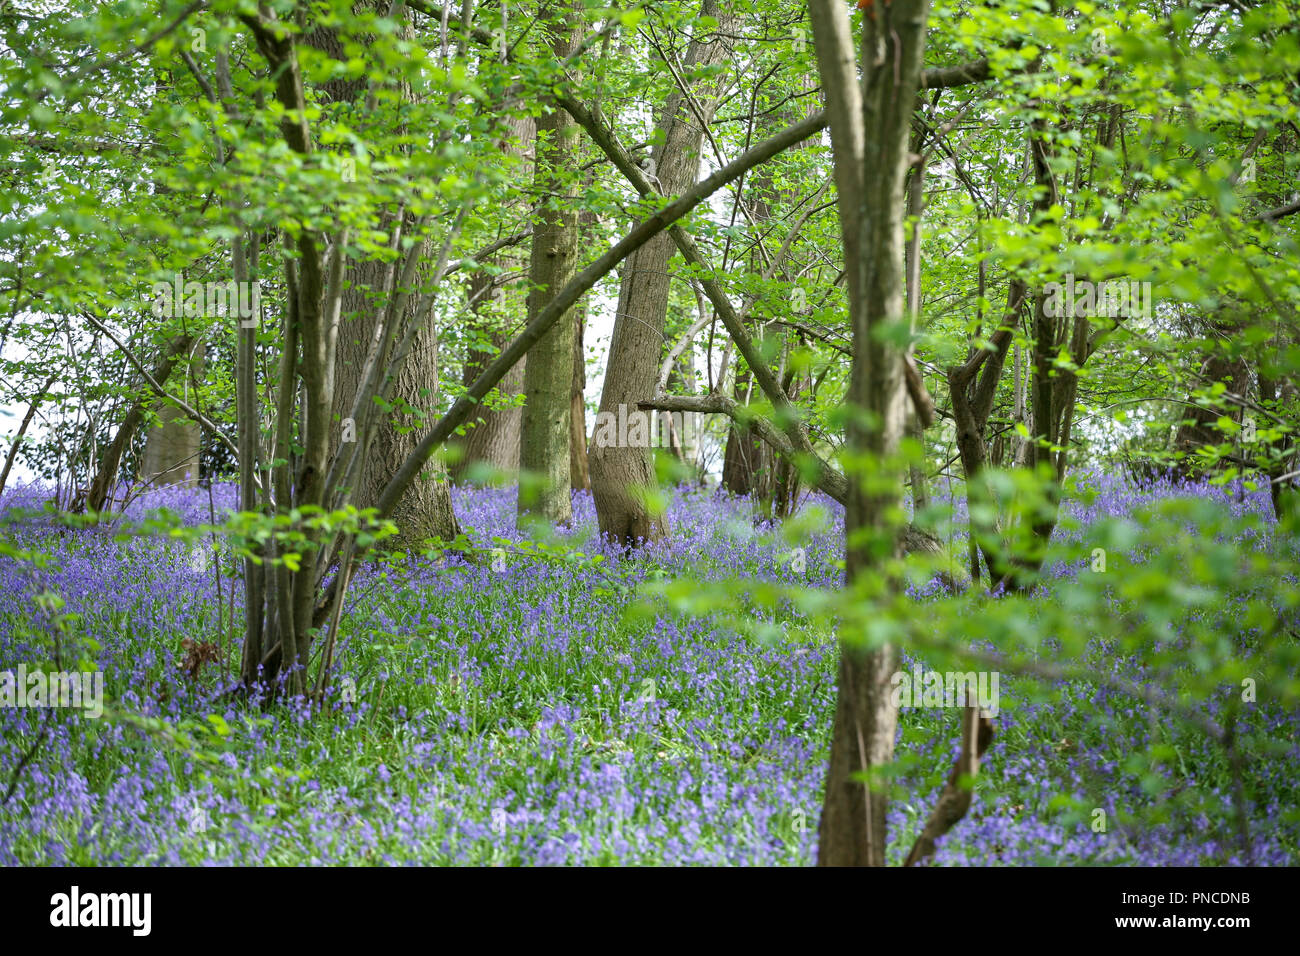 Ancient English bluebell (Hyacinthoides non-scripta) woodland - Stock Image